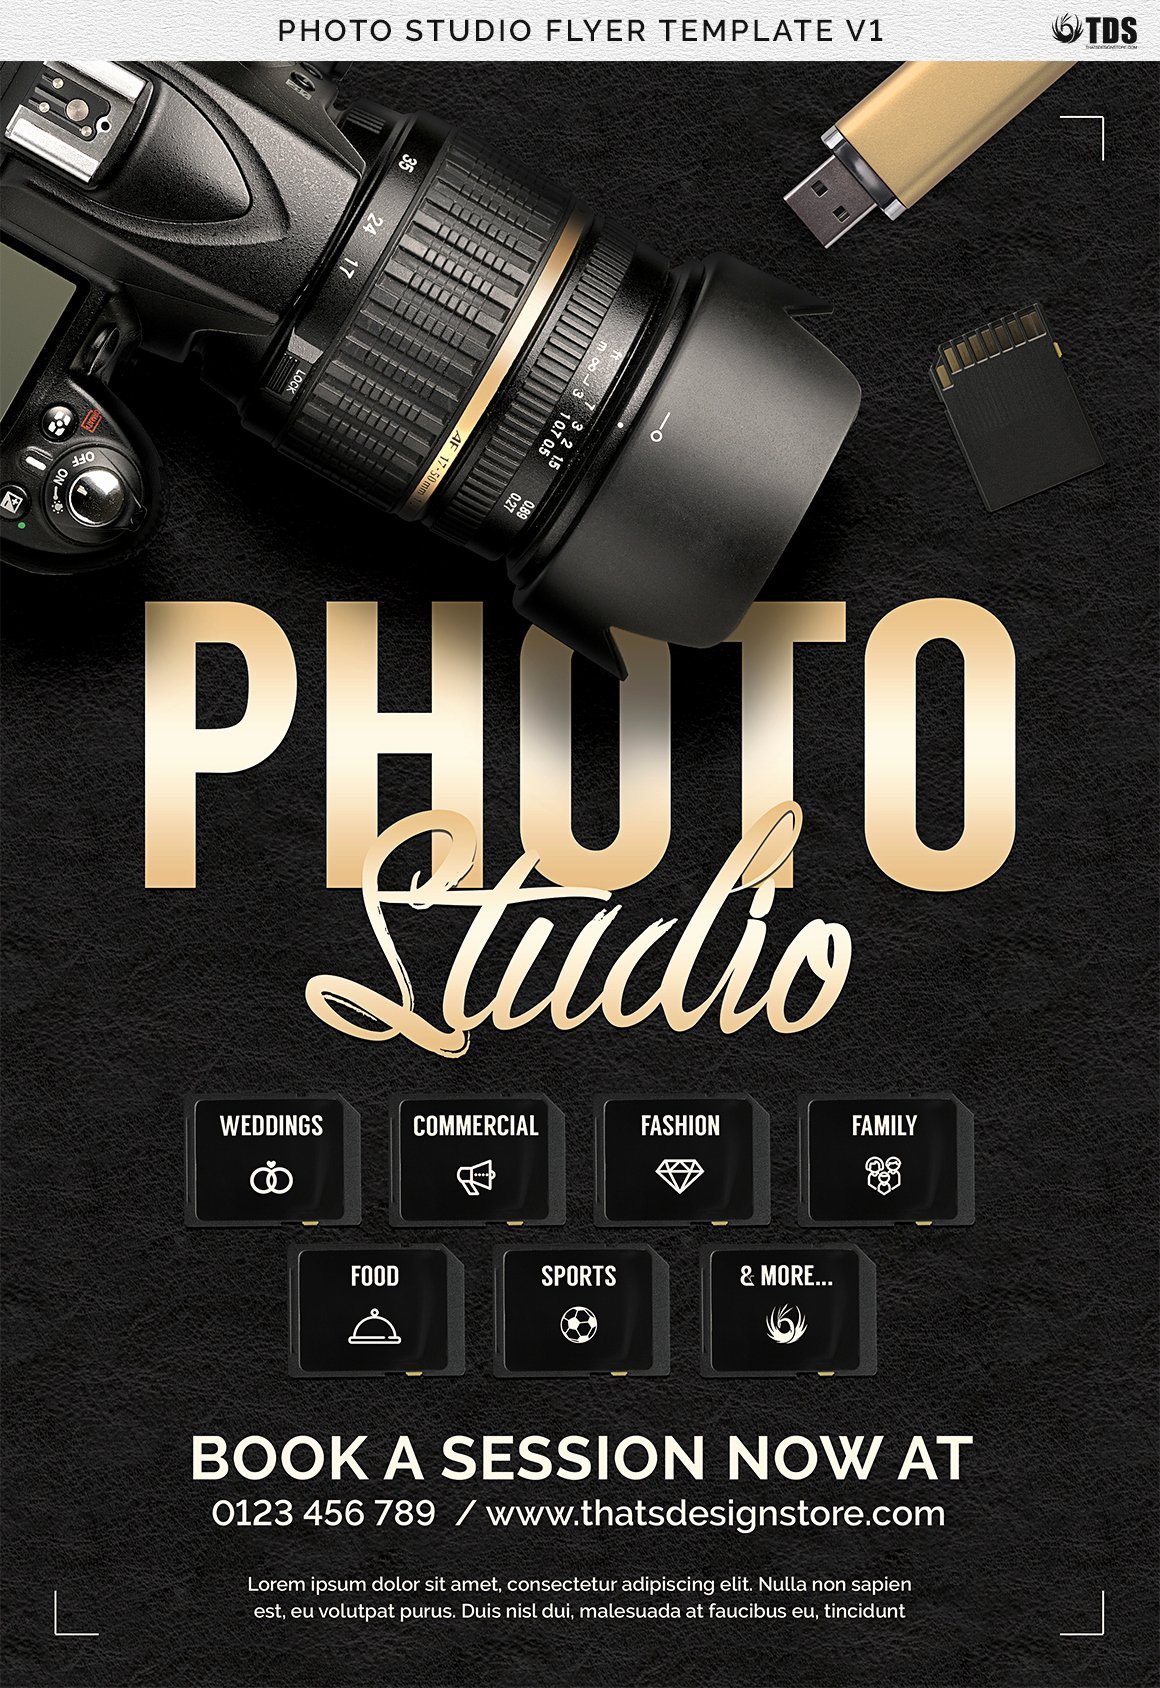 Free Photography Flyer Templates Fresh Studio Flyer Template V1